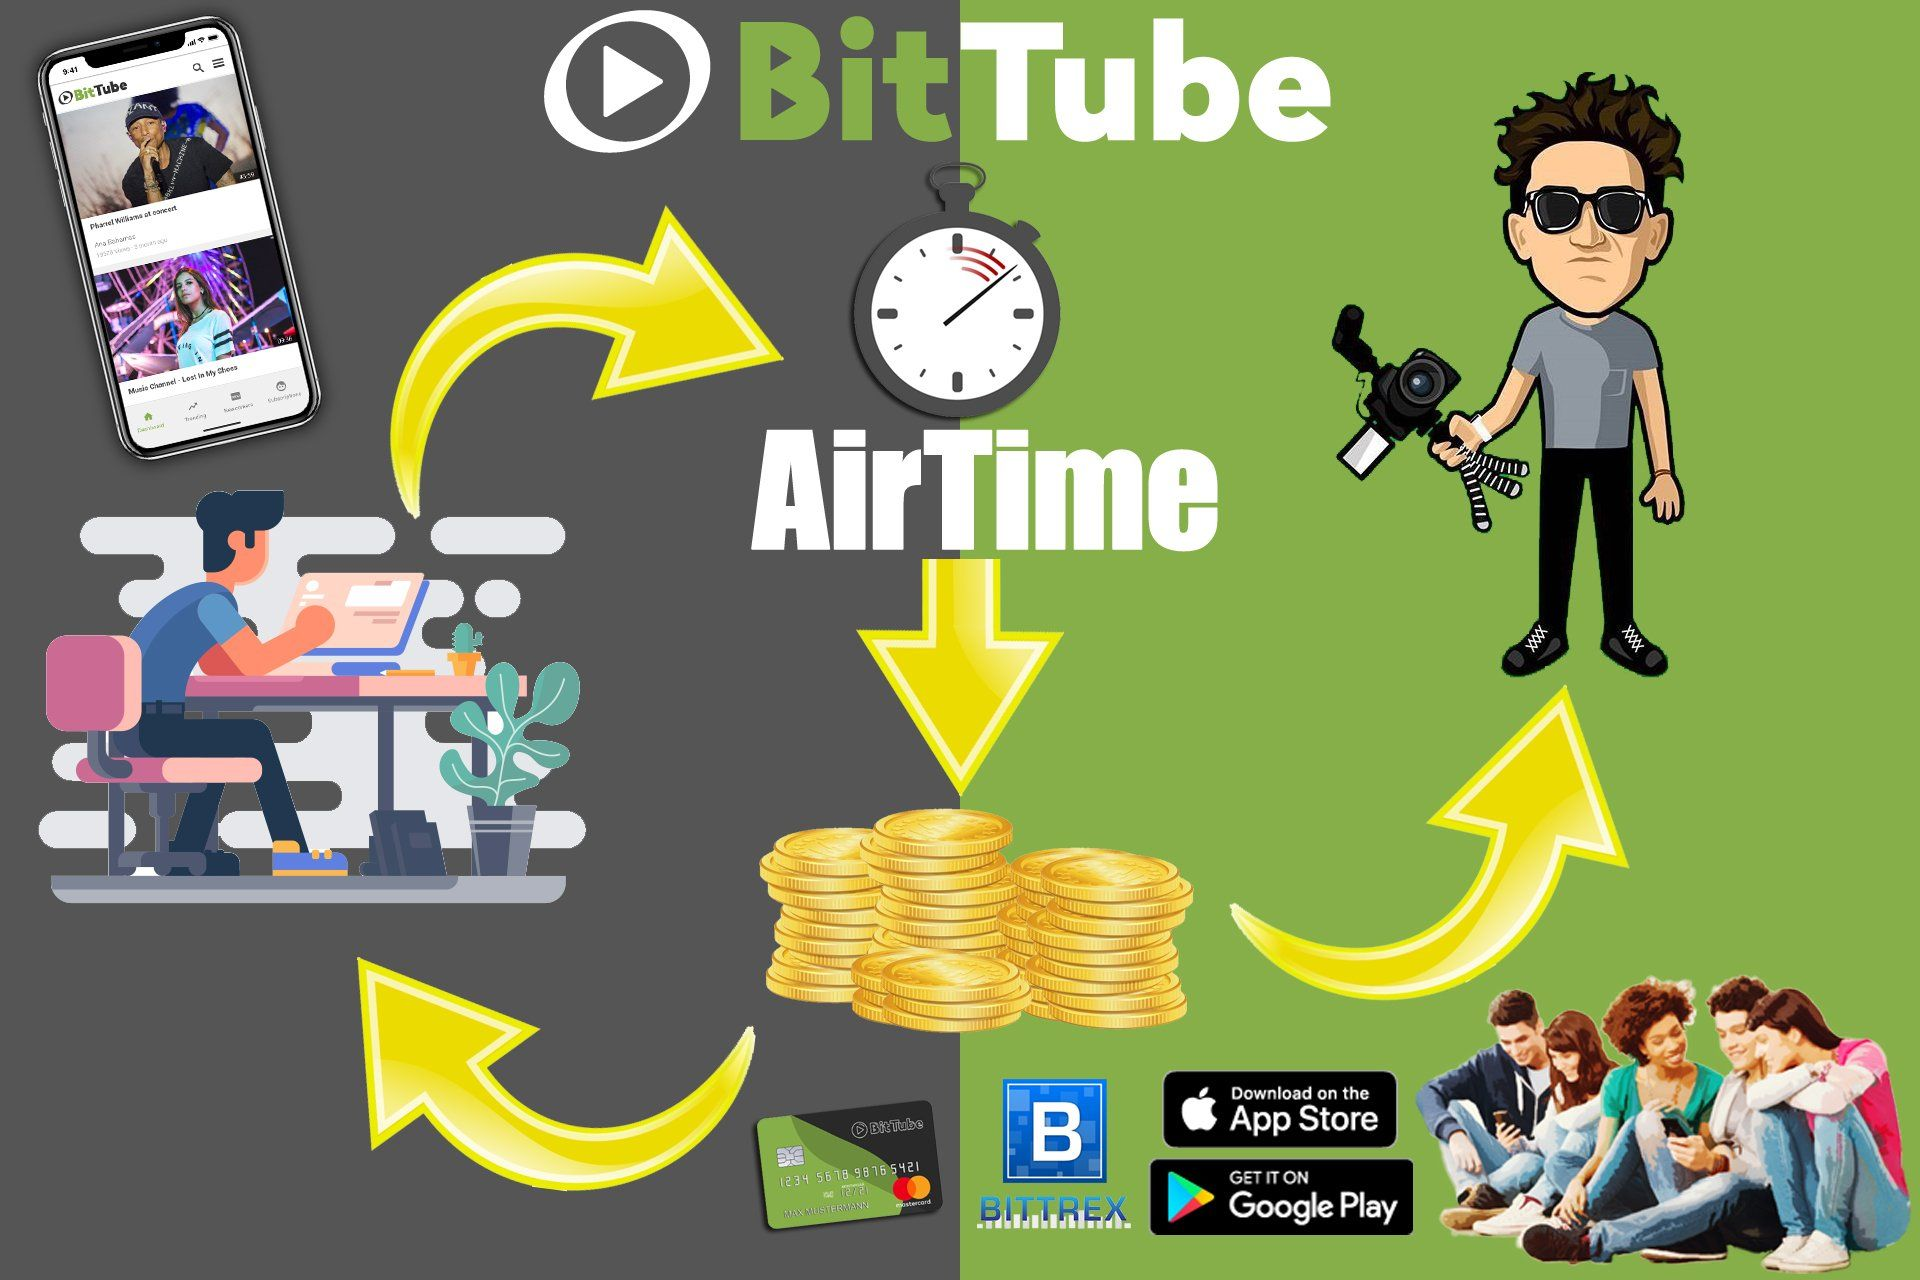 Pin by canericaexchange on bit tube career marketing